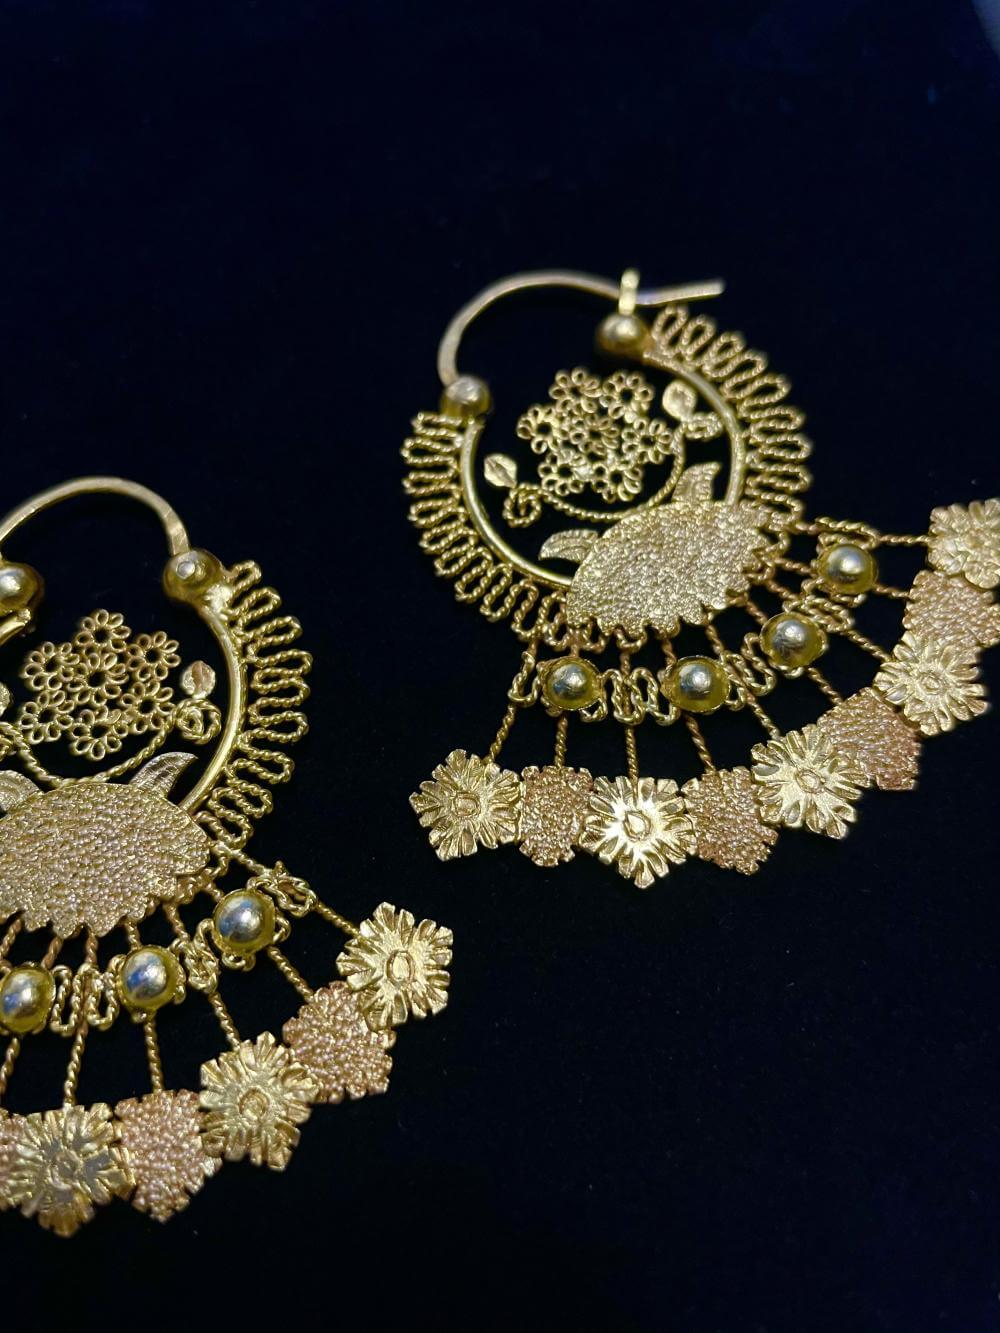 VINTA Gallery Jewelry Collection - Banaba Flower Creolla Earrings